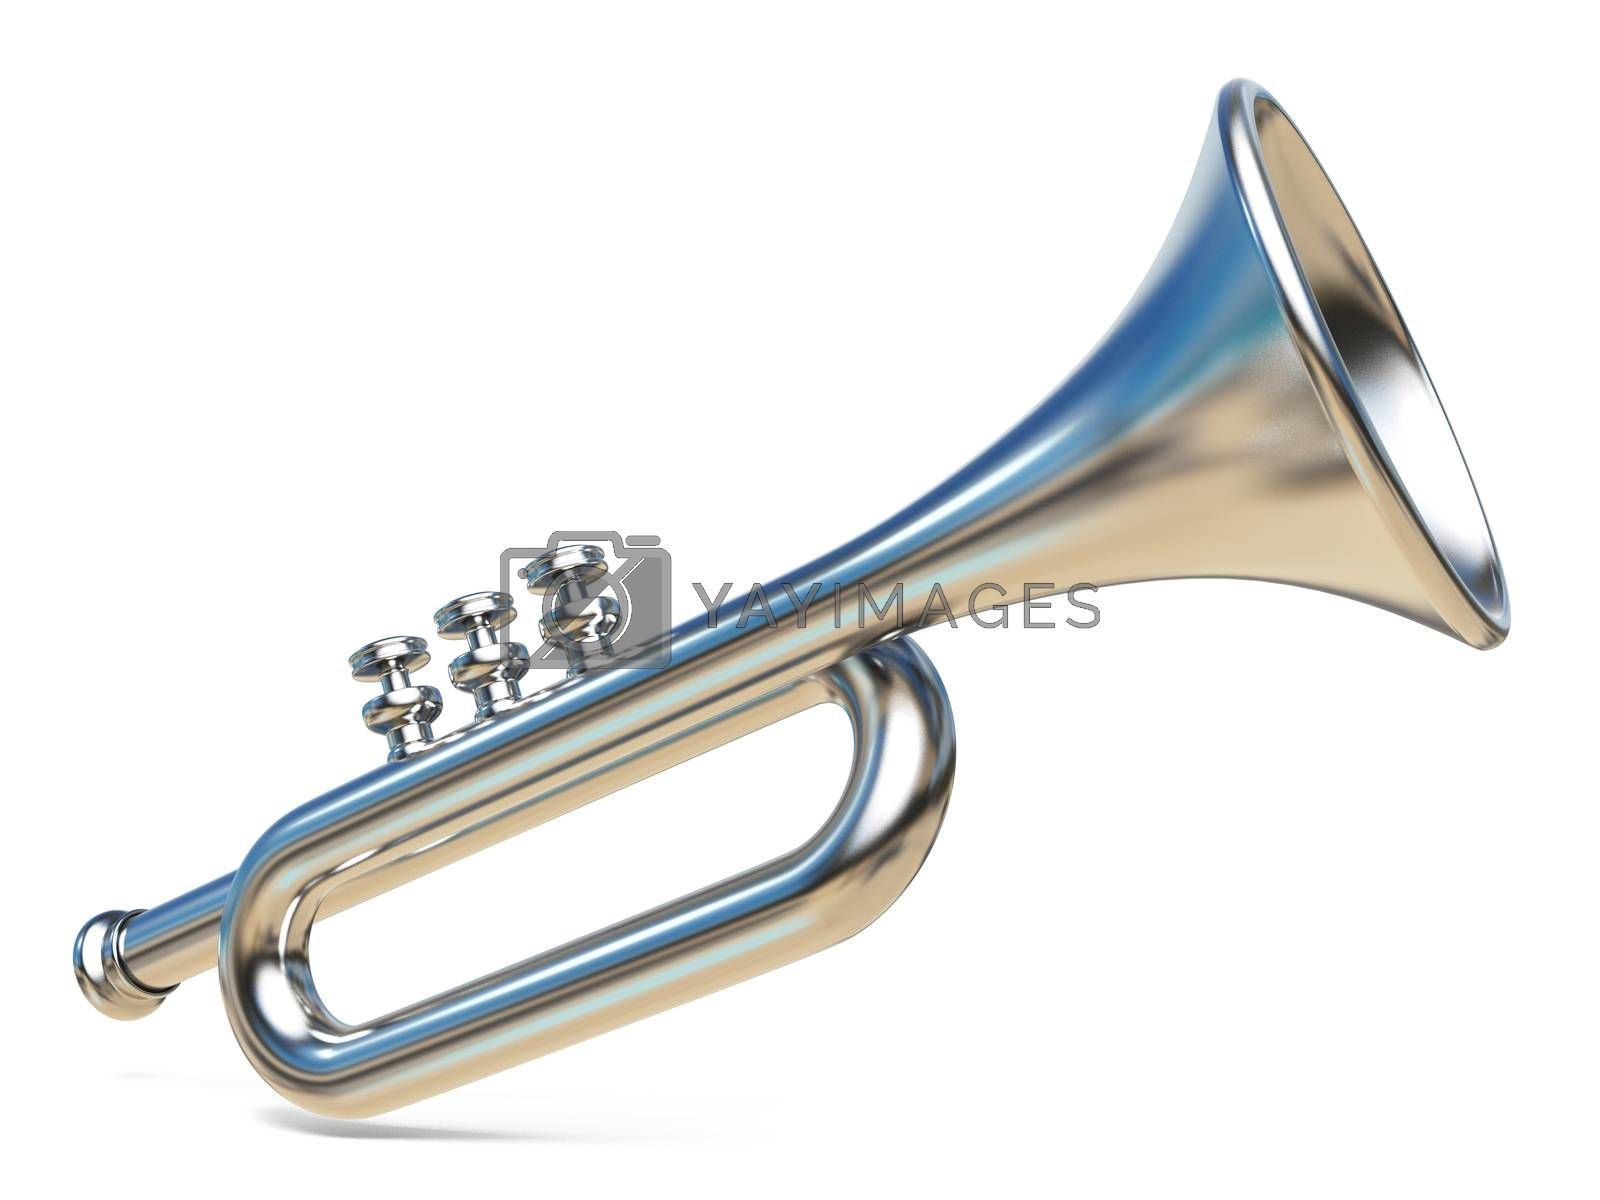 Simple silver trumpet 3D by djmilic